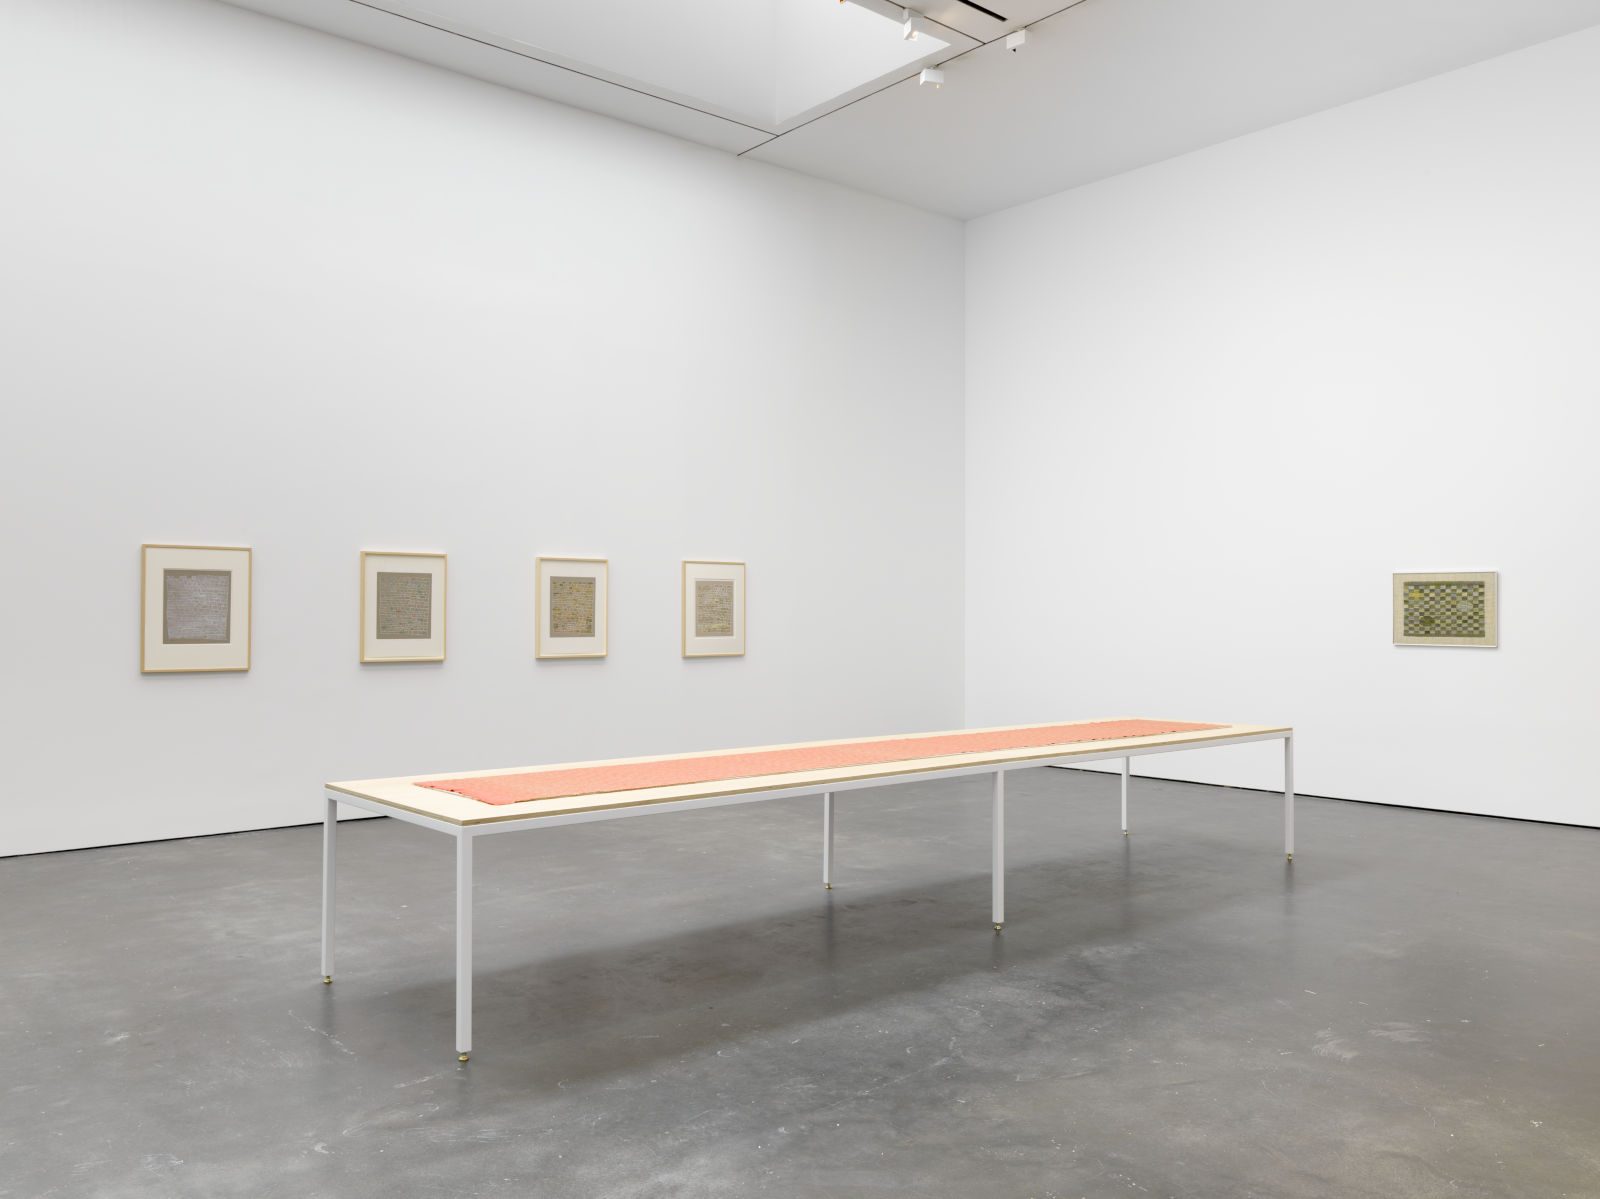 David Zwirner 20th St Anni Albers 1